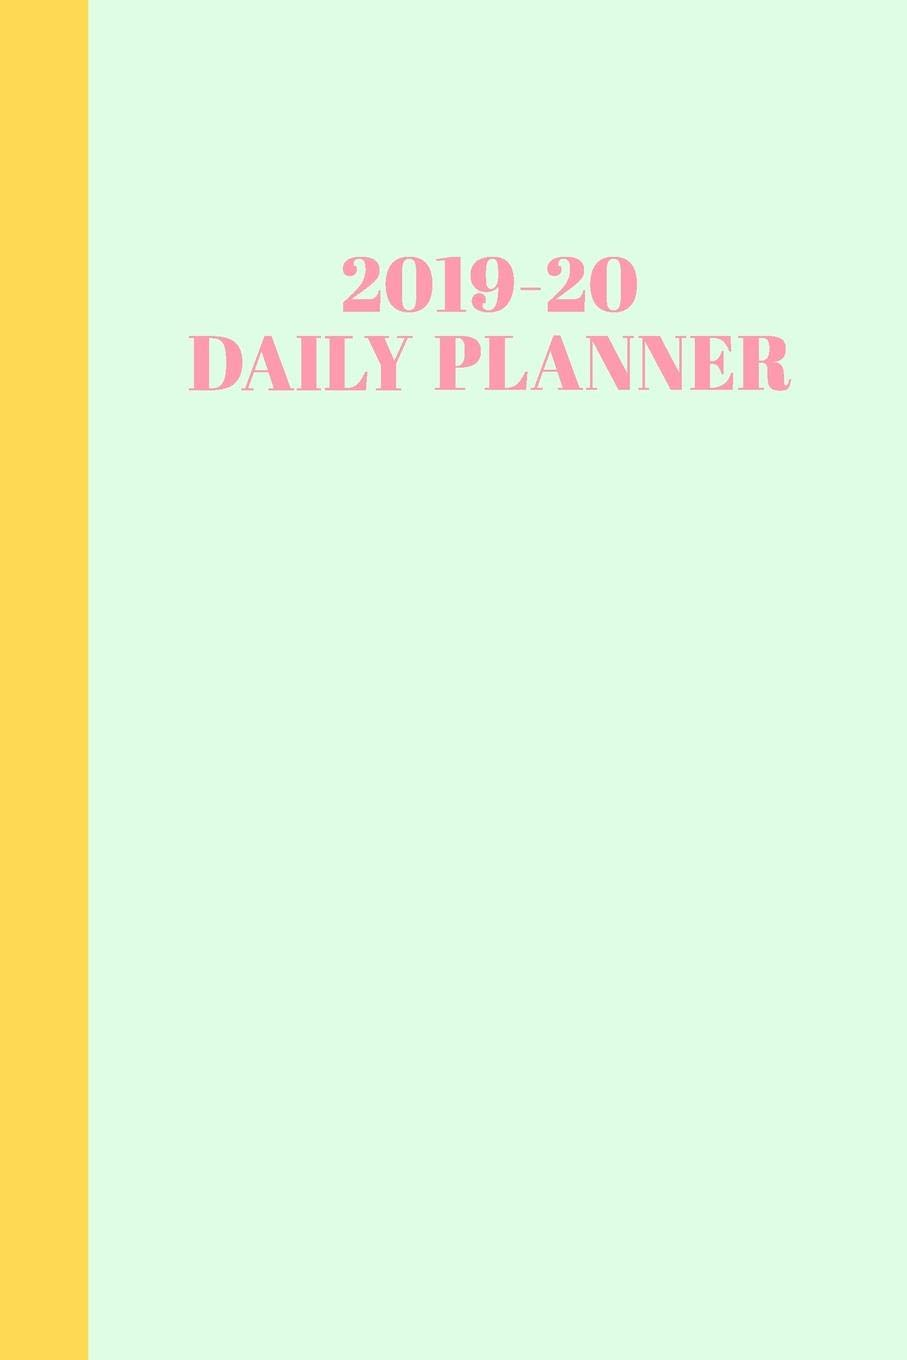 2019-20 Daily Planner: Academic Year Agenda with Monthly and ...